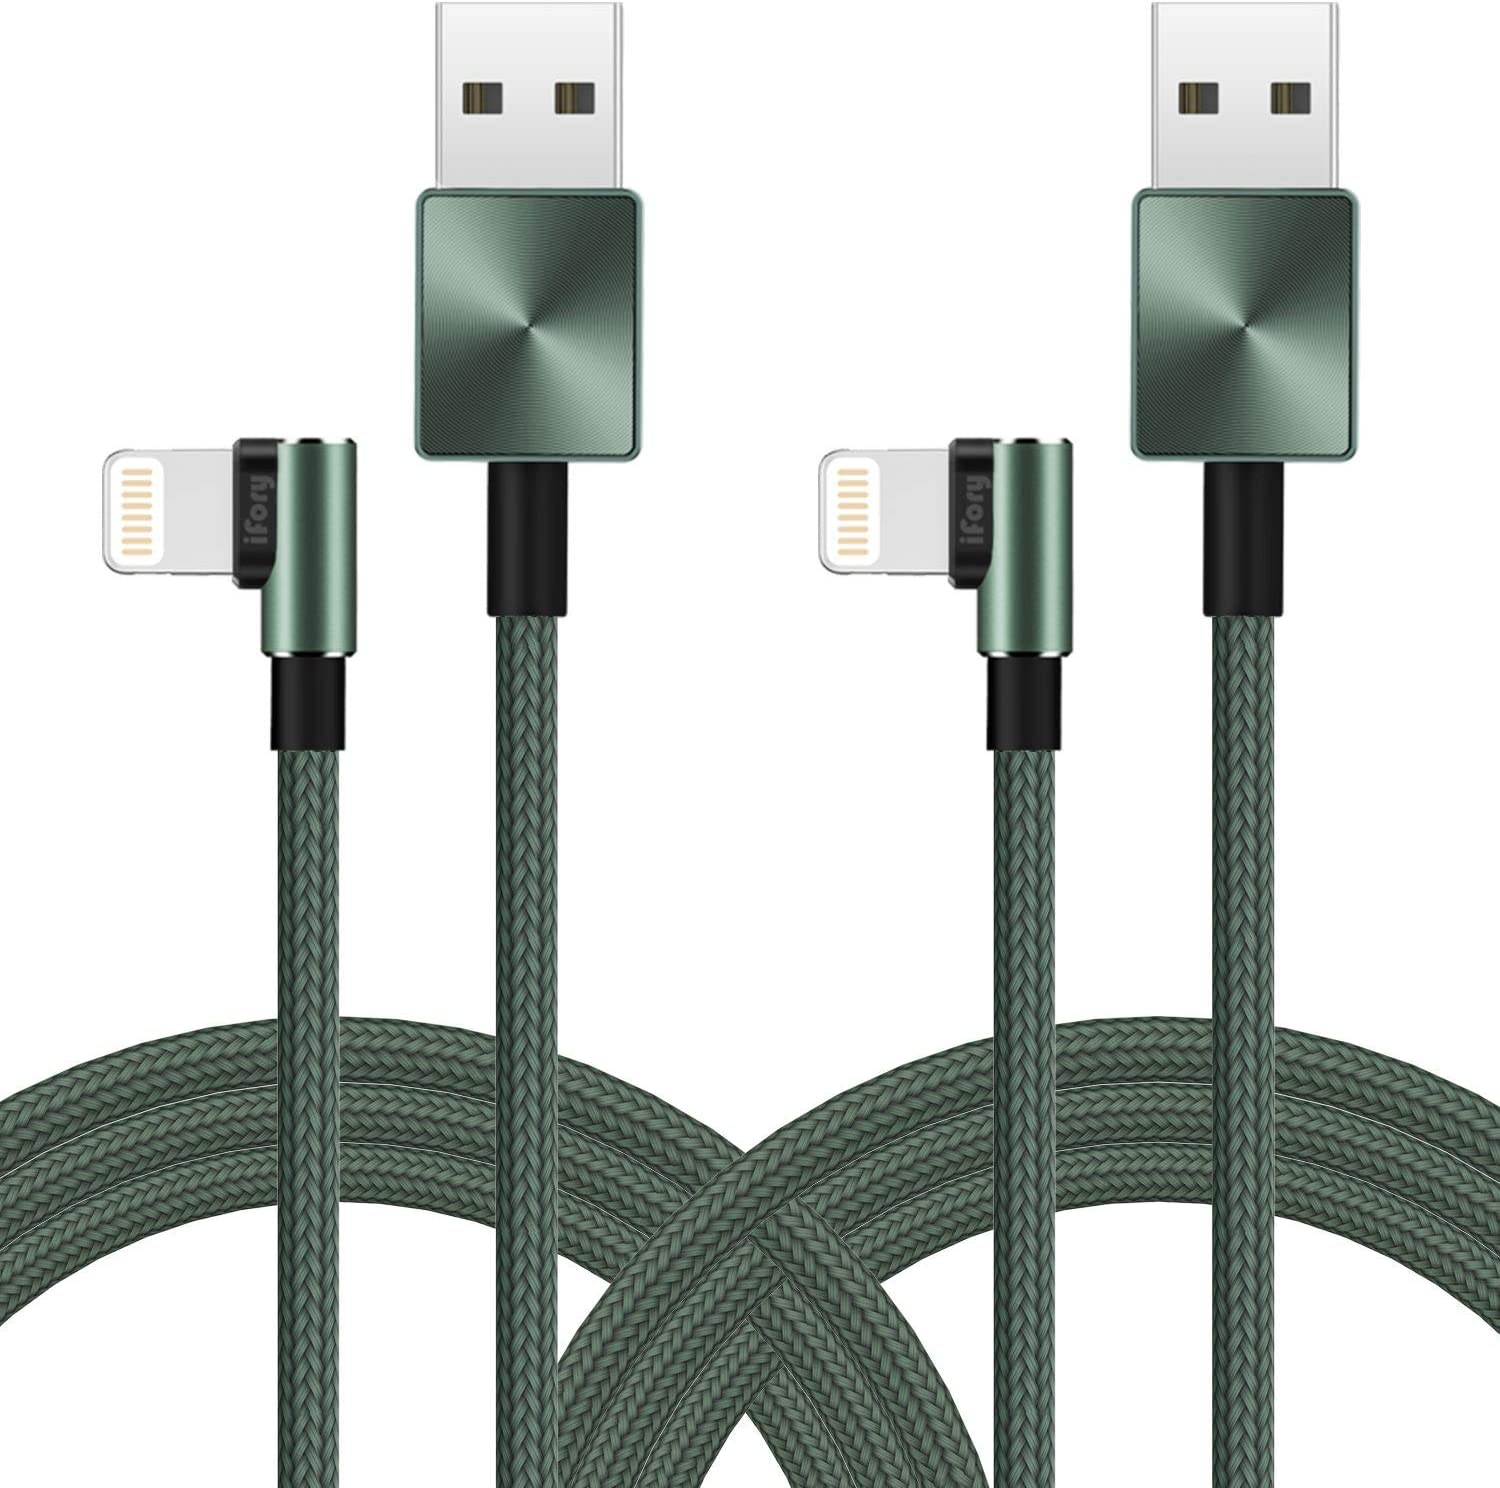 iFory Lightning Cable 90 Degree, iPhone Charger [Apple MFi Certified / 1ft 2 Pack/Green] Fast Charging Cord Compatible with iPhone 11 Pro Max, 11 Pro, X, Xs, Xr, Xs Max, 8/8 Plus, 7/7 Plus